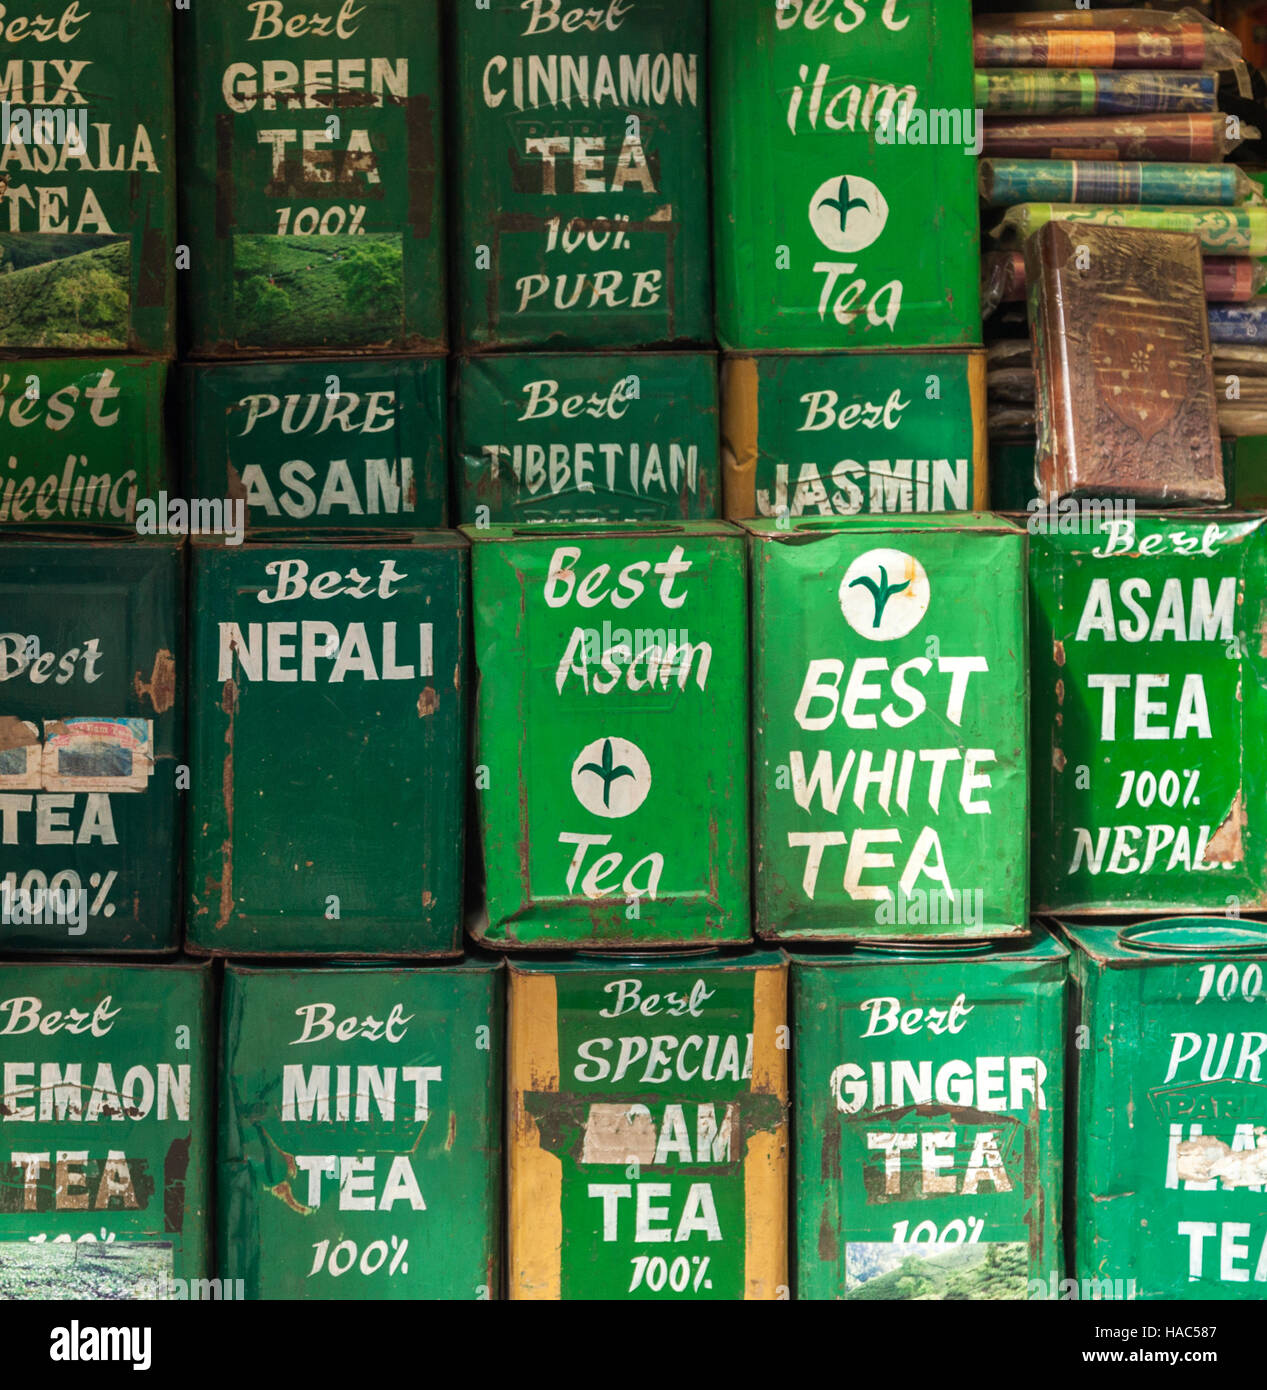 Tins of different teas for sale in a shop in Kathmandu Stock Photo